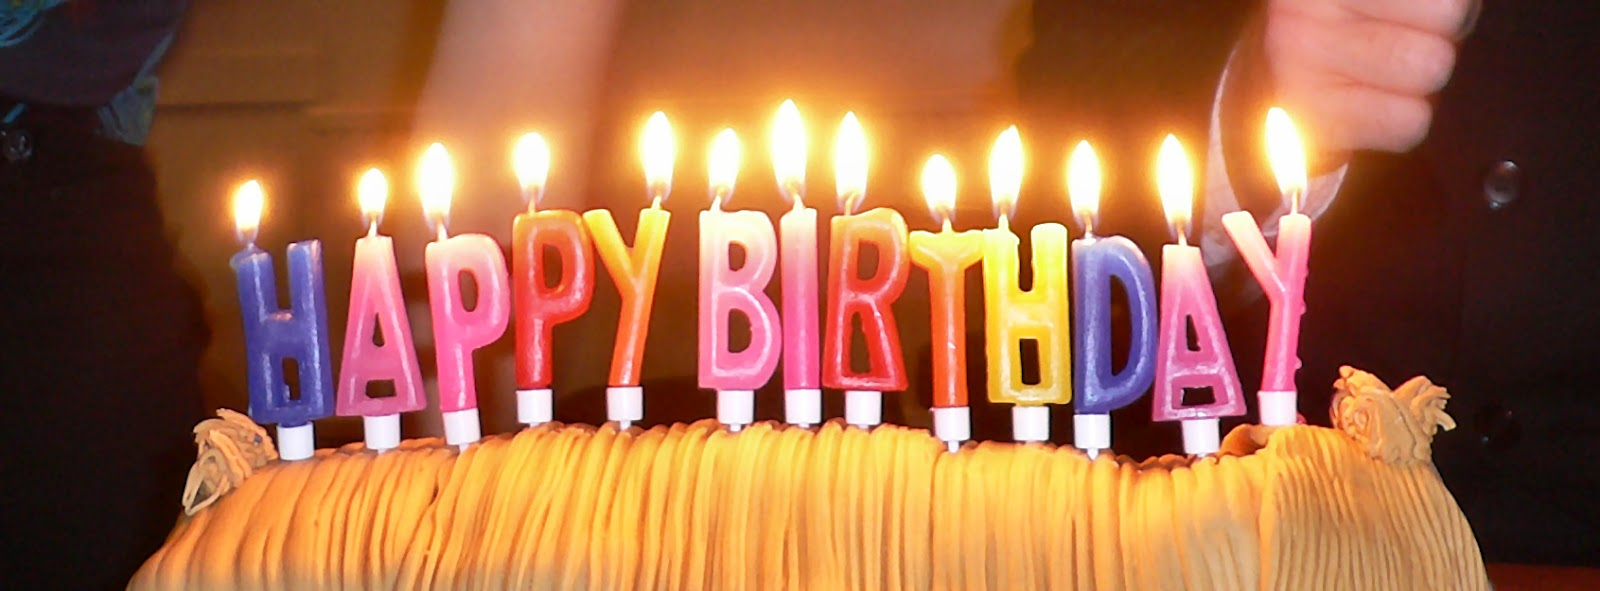 Bengali best sms birthday sms birthday sms in soft gleaming of stars may all ur dreams come true may evry star of every night bring love and joy to you happy birthday m4hsunfo